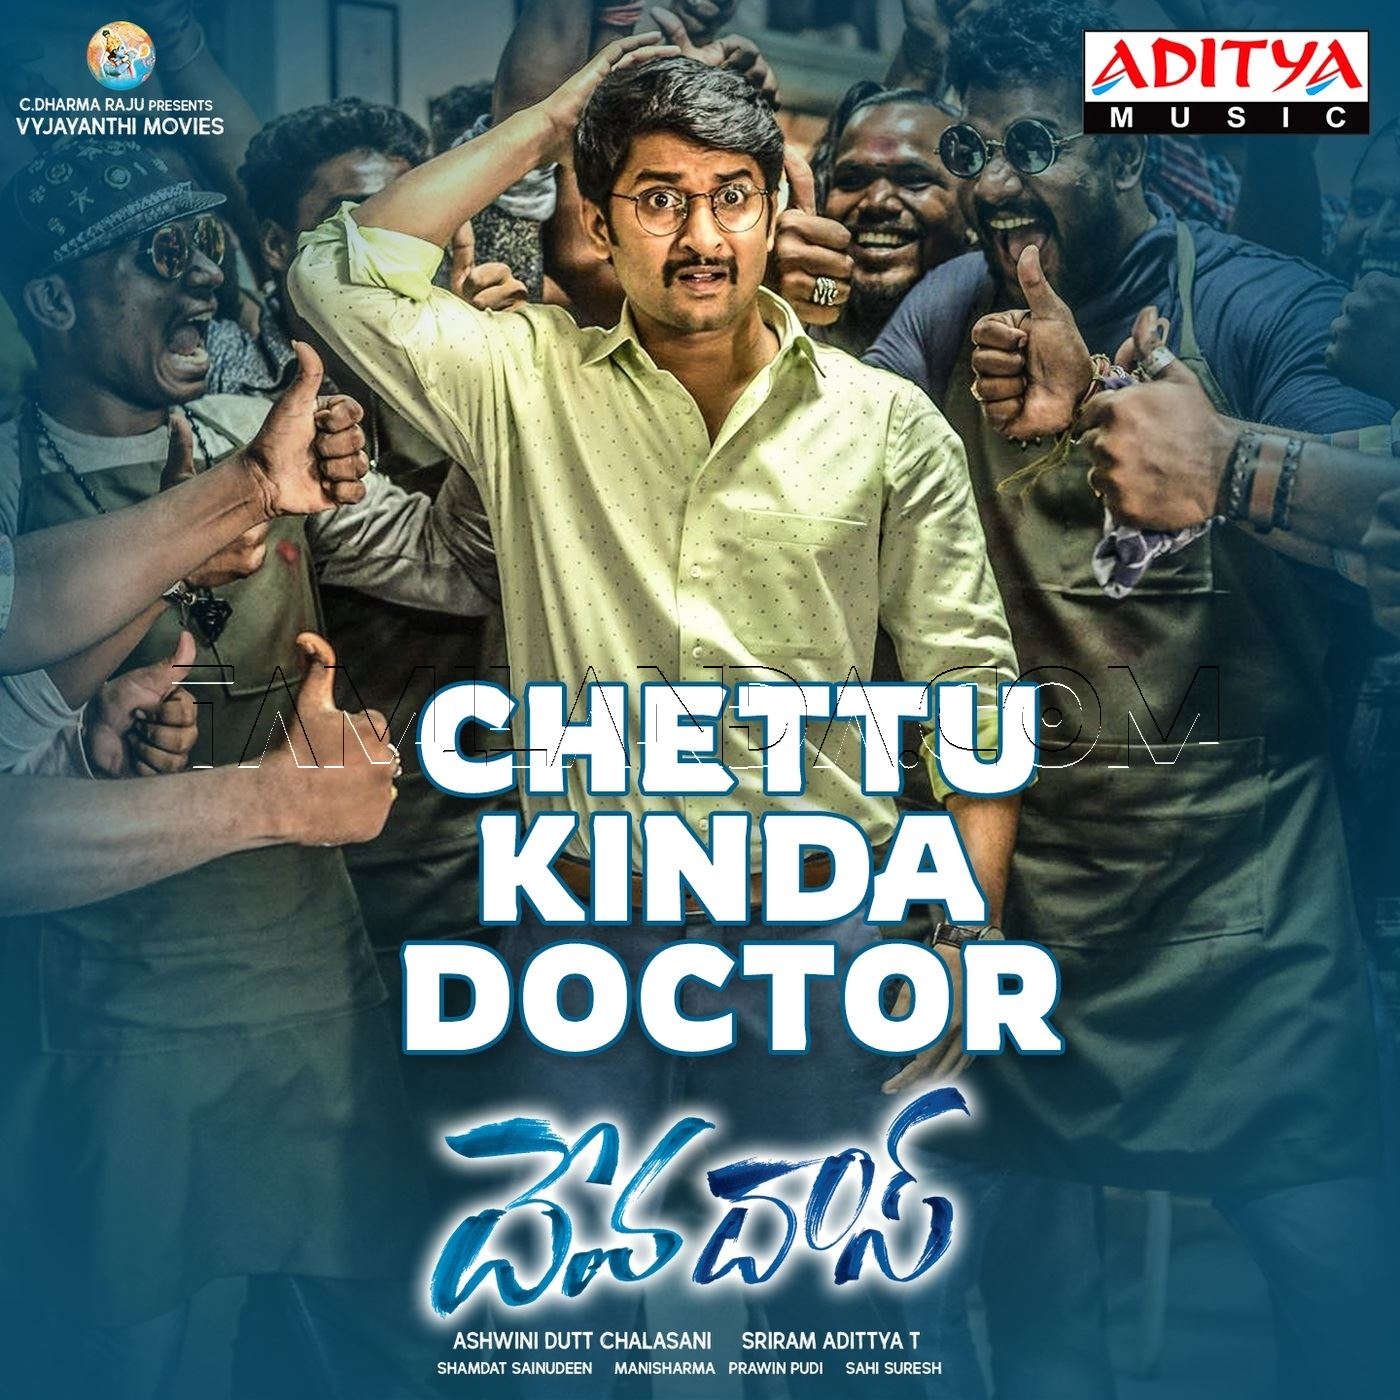 Chettu Kinda Doctor (From Devadas) – Single FLAC Song